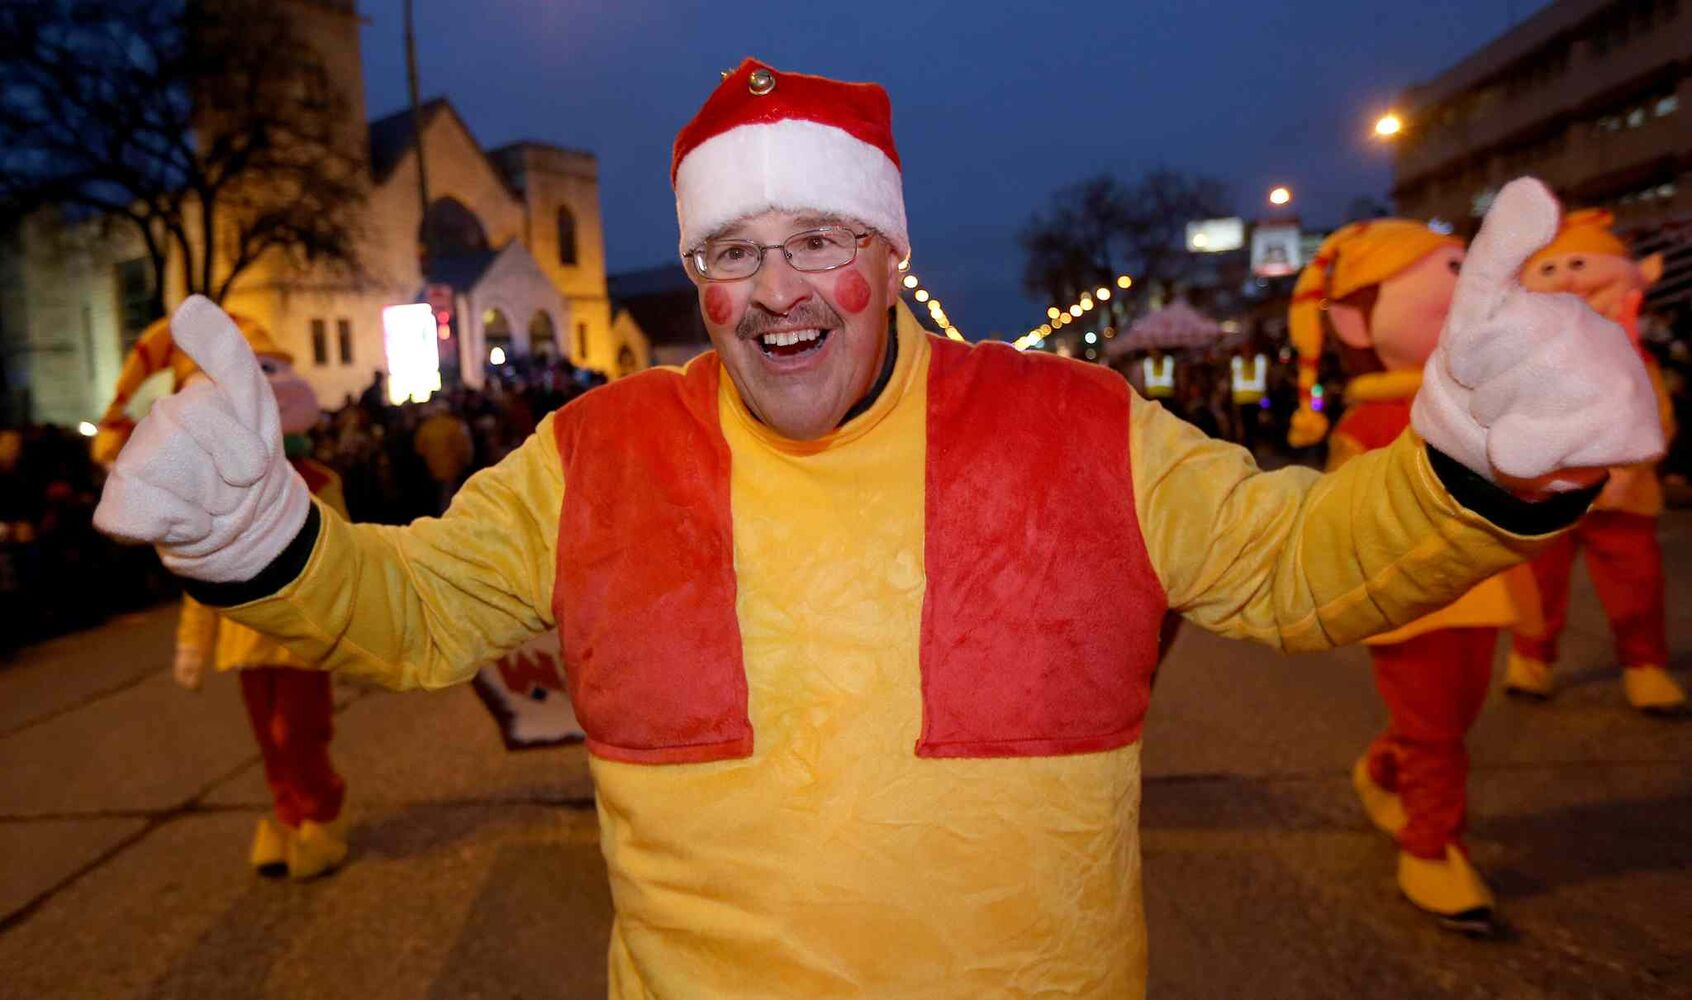 Dancing Gabe leads the Santa Claus Parade on Portage Avenue Saturday night. (TREVOR HAGAN / WINNIPEG FREE PRESS)